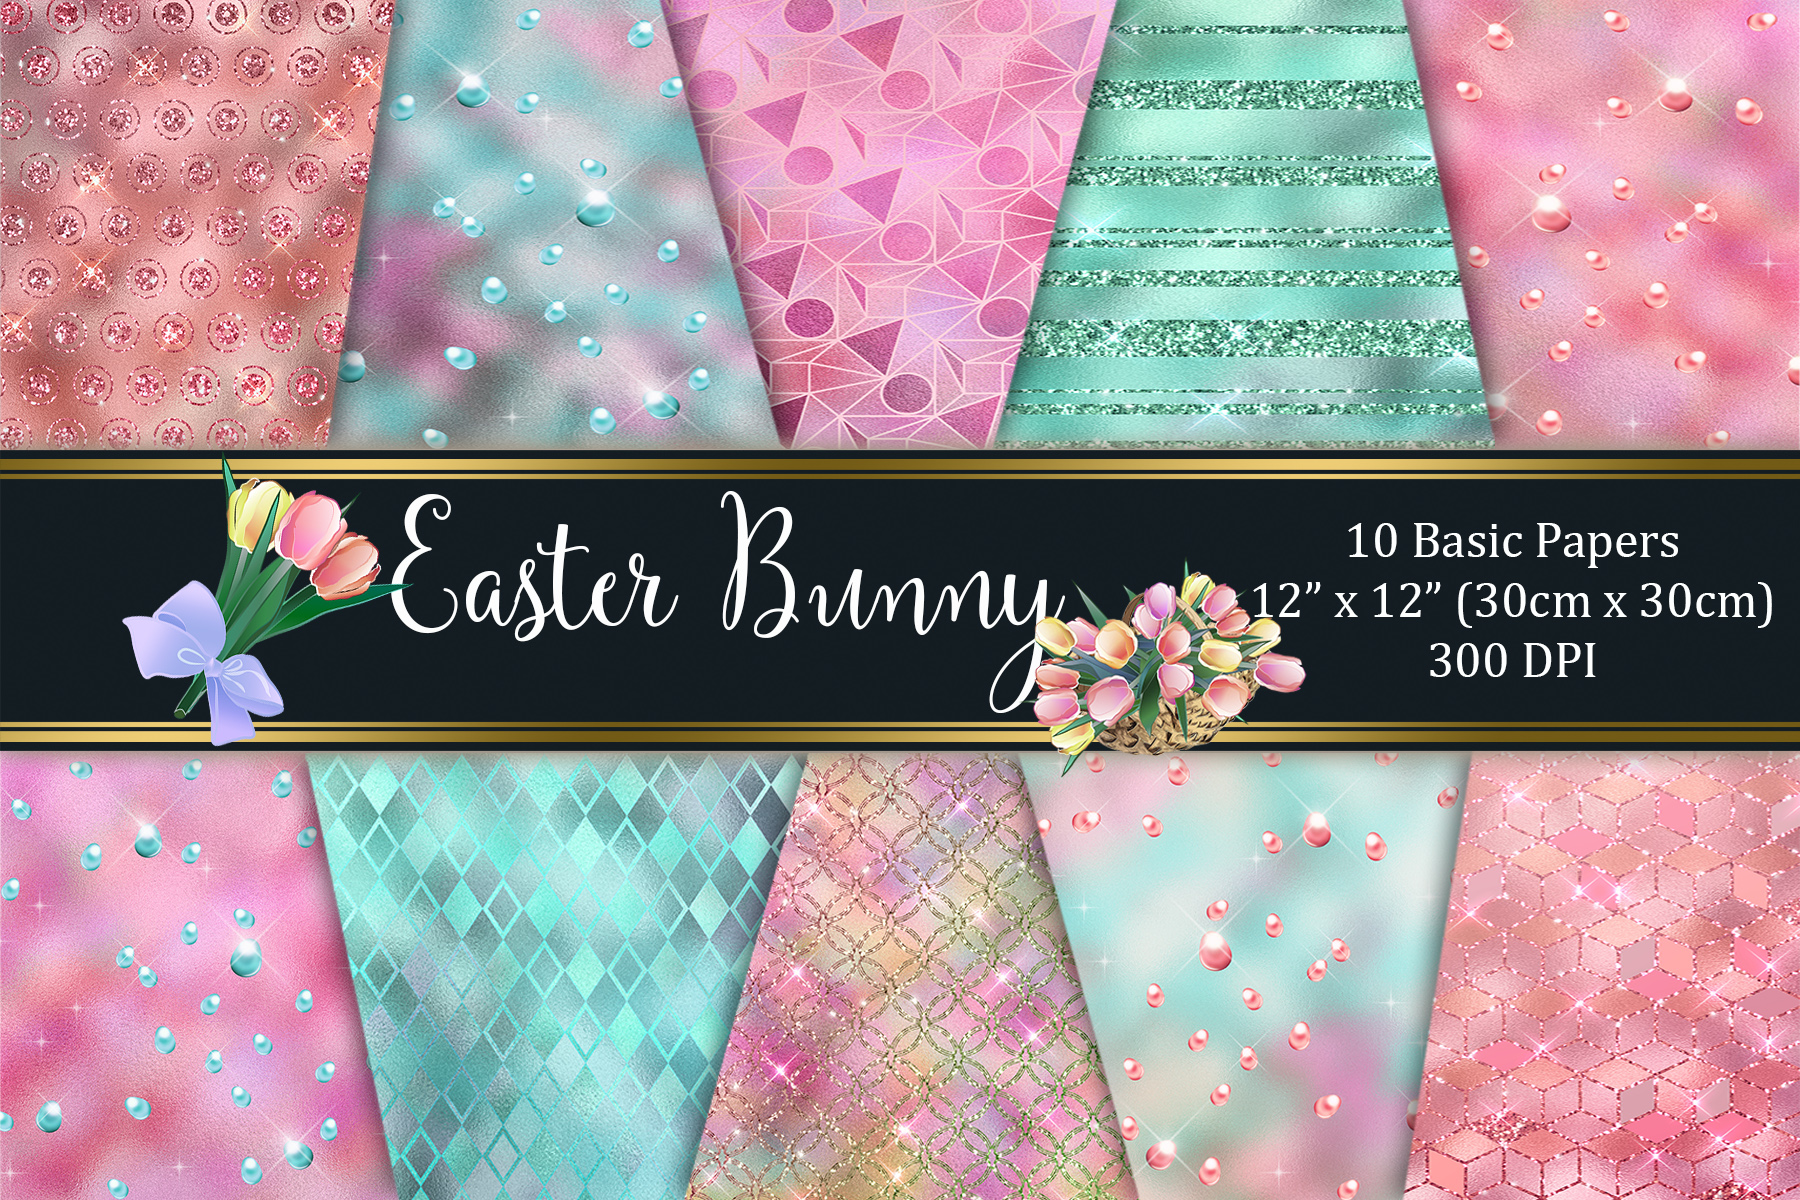 Download Free Easter Bunny Basic Paper Graphic By Tara Artisan Creative Fabrica for Cricut Explore, Silhouette and other cutting machines.